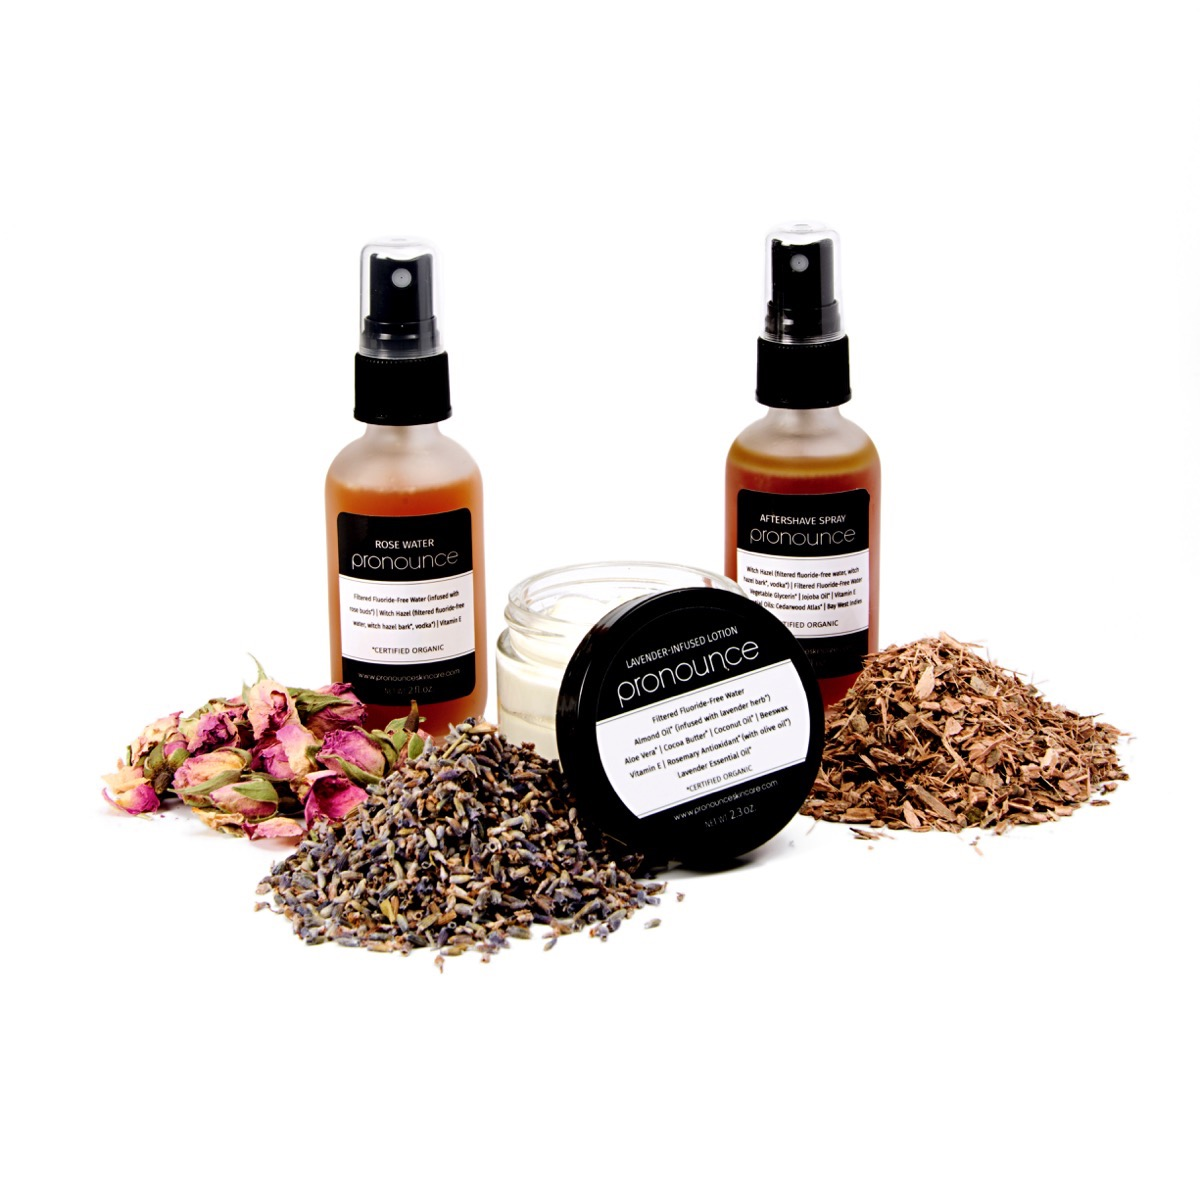 Pronounce Skincare - Using the finest organic herbs, carrier oils, & butters in your skincare products with ingredients you can...pronounce (raw materials) 1200 x 1200